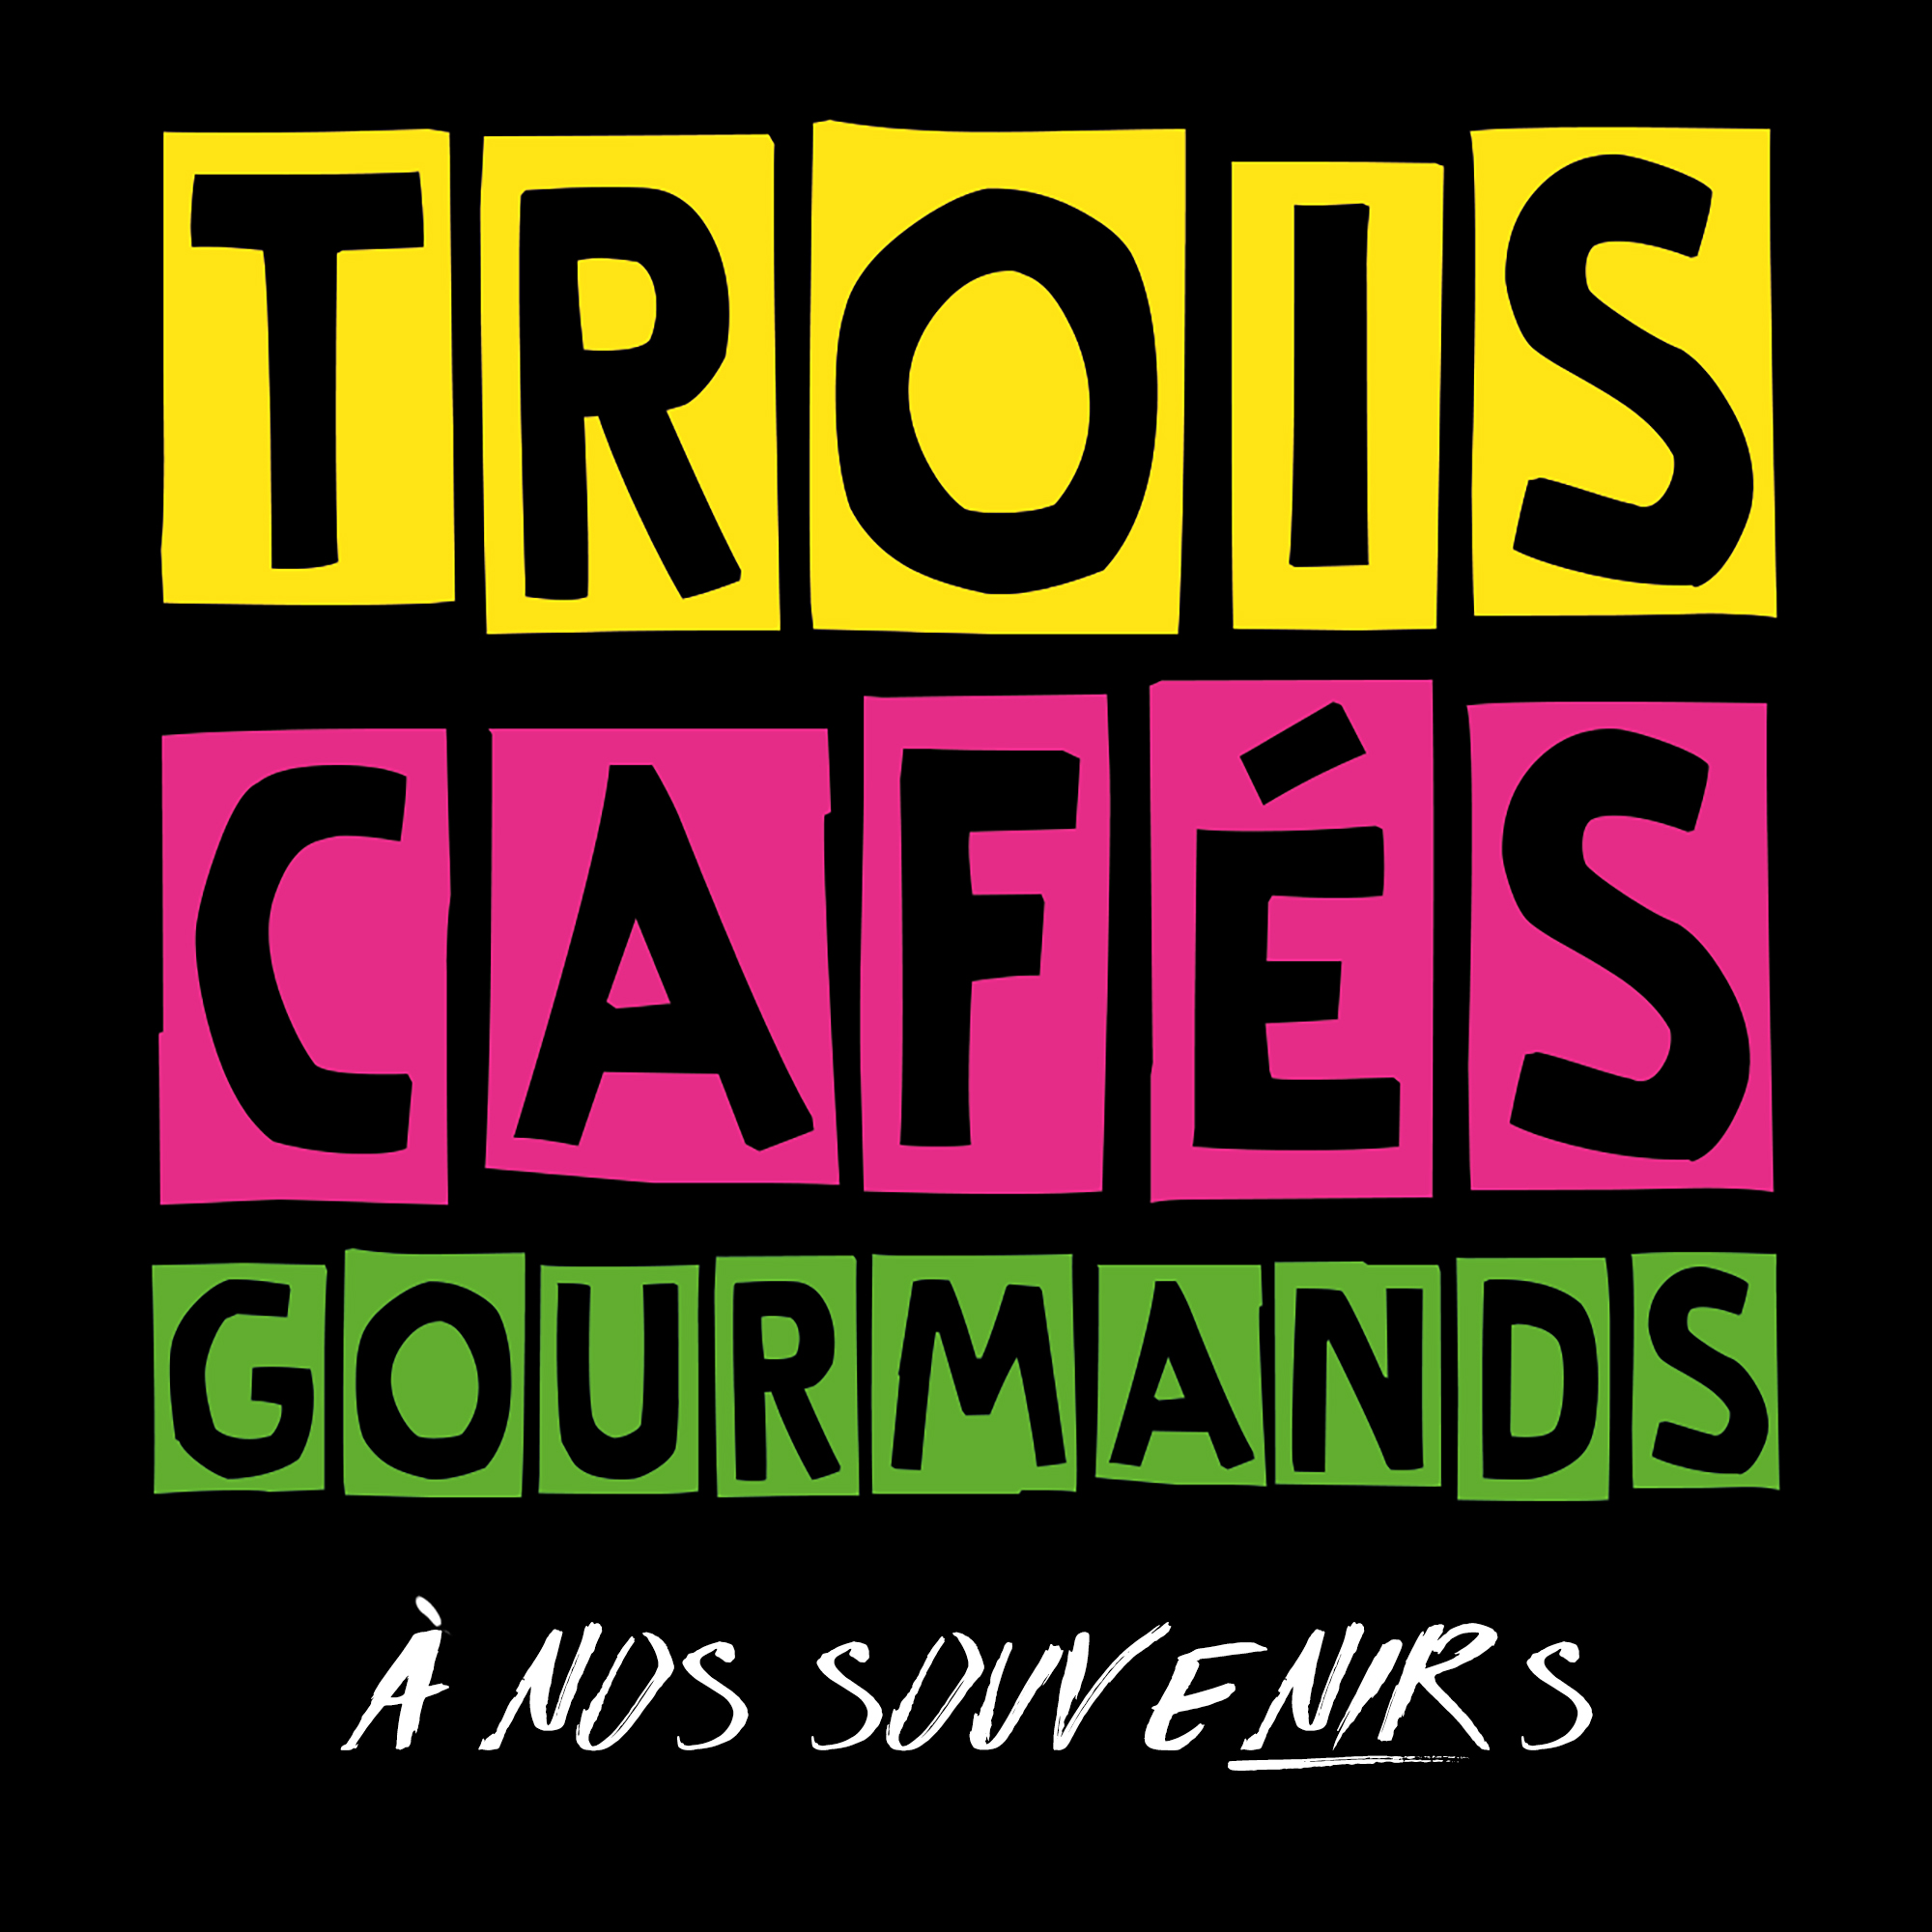 cover 3CafesGourmands